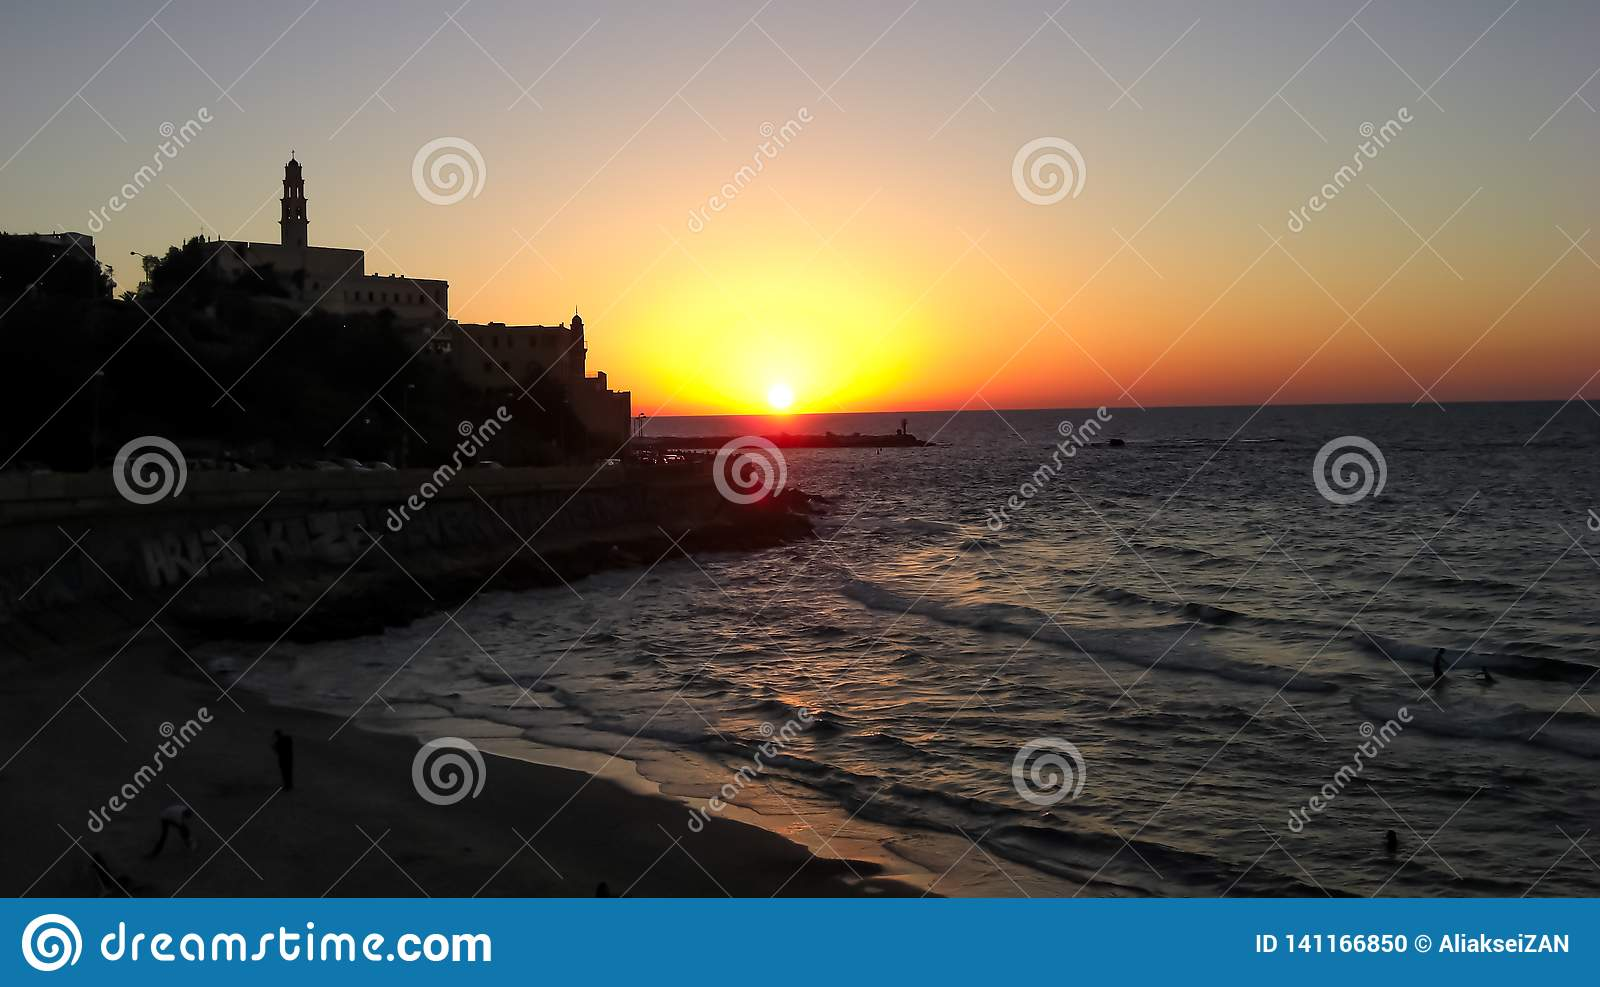 Old City of Jaffa, sunset